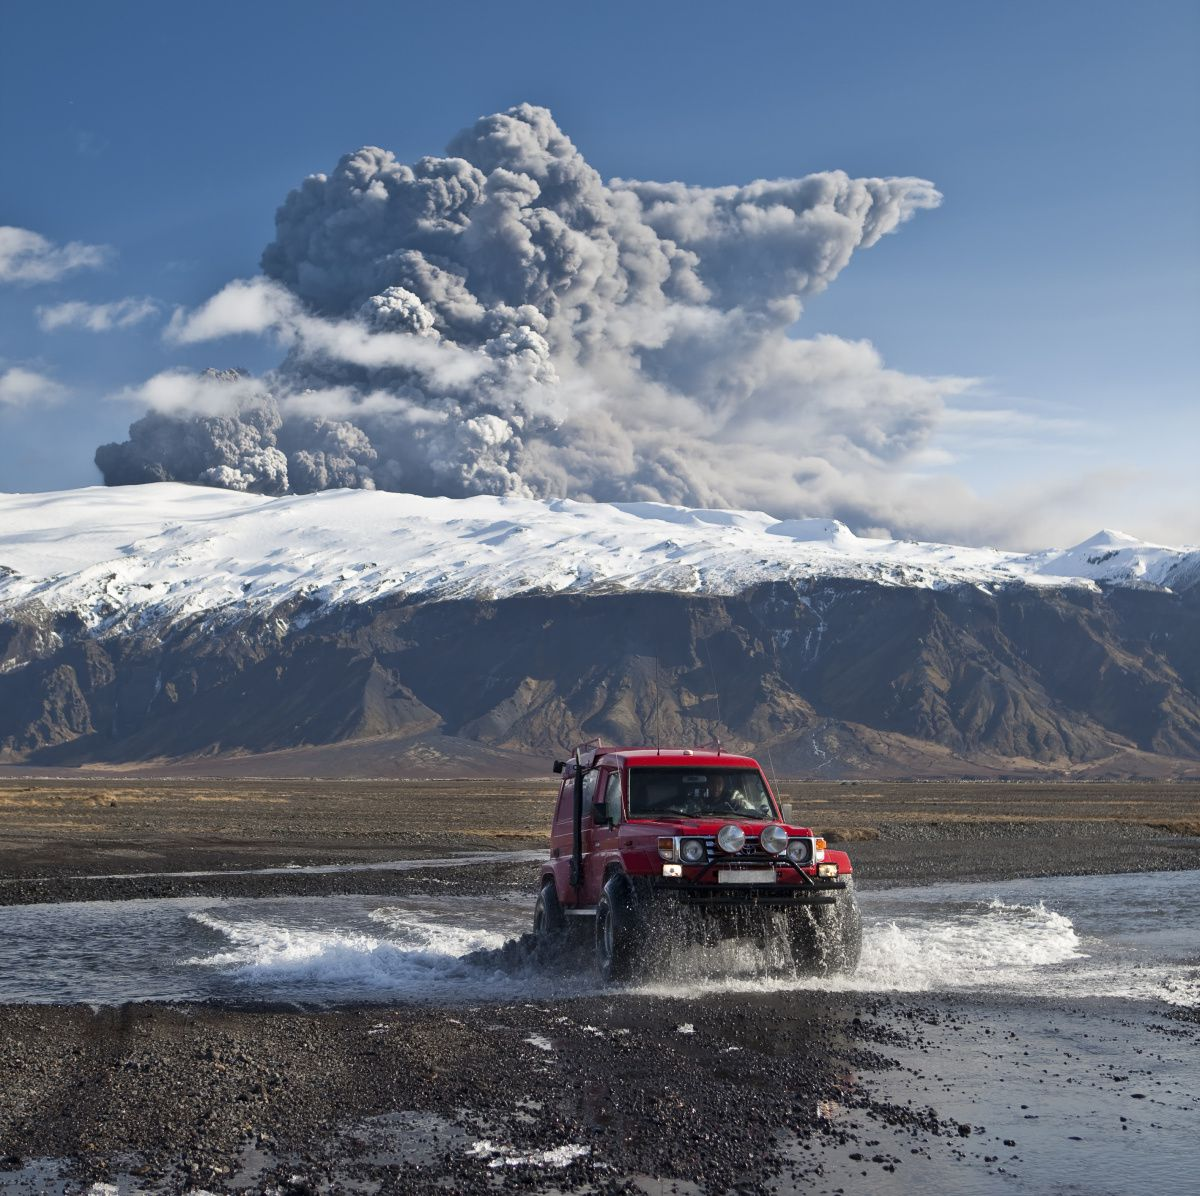 Eruption of Eyjafjallajökull in 2010 -  Artic pictures